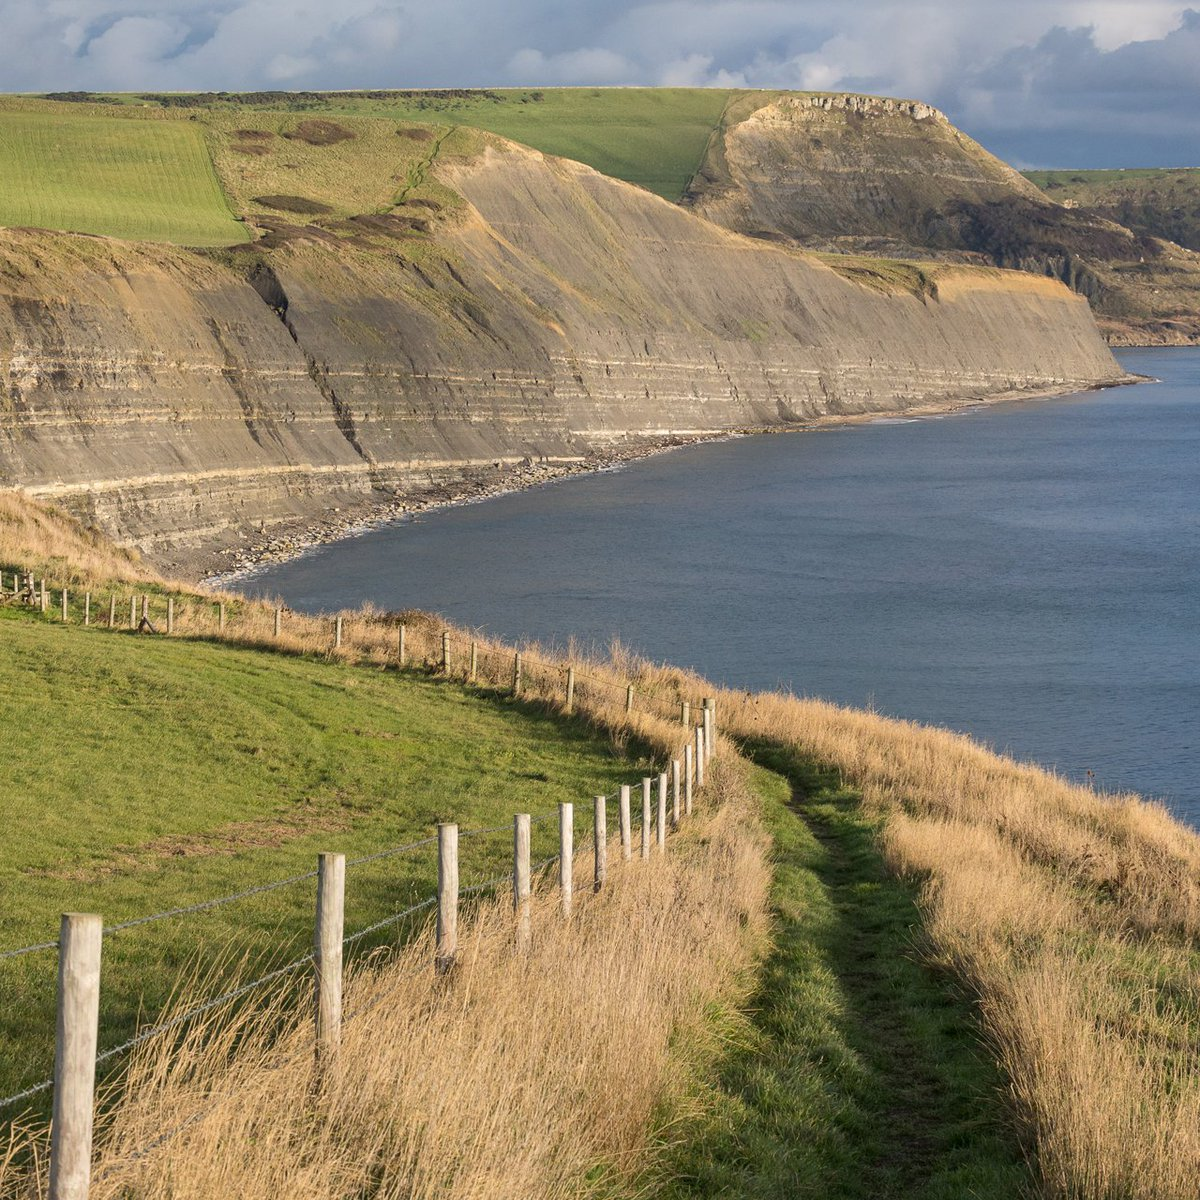 Read about @QuintinLake's coast project in #WalkMagazine, then grab a camera & go #walking https://t.co/JuADEXr29b https://t.co/tnVIt5IXXU